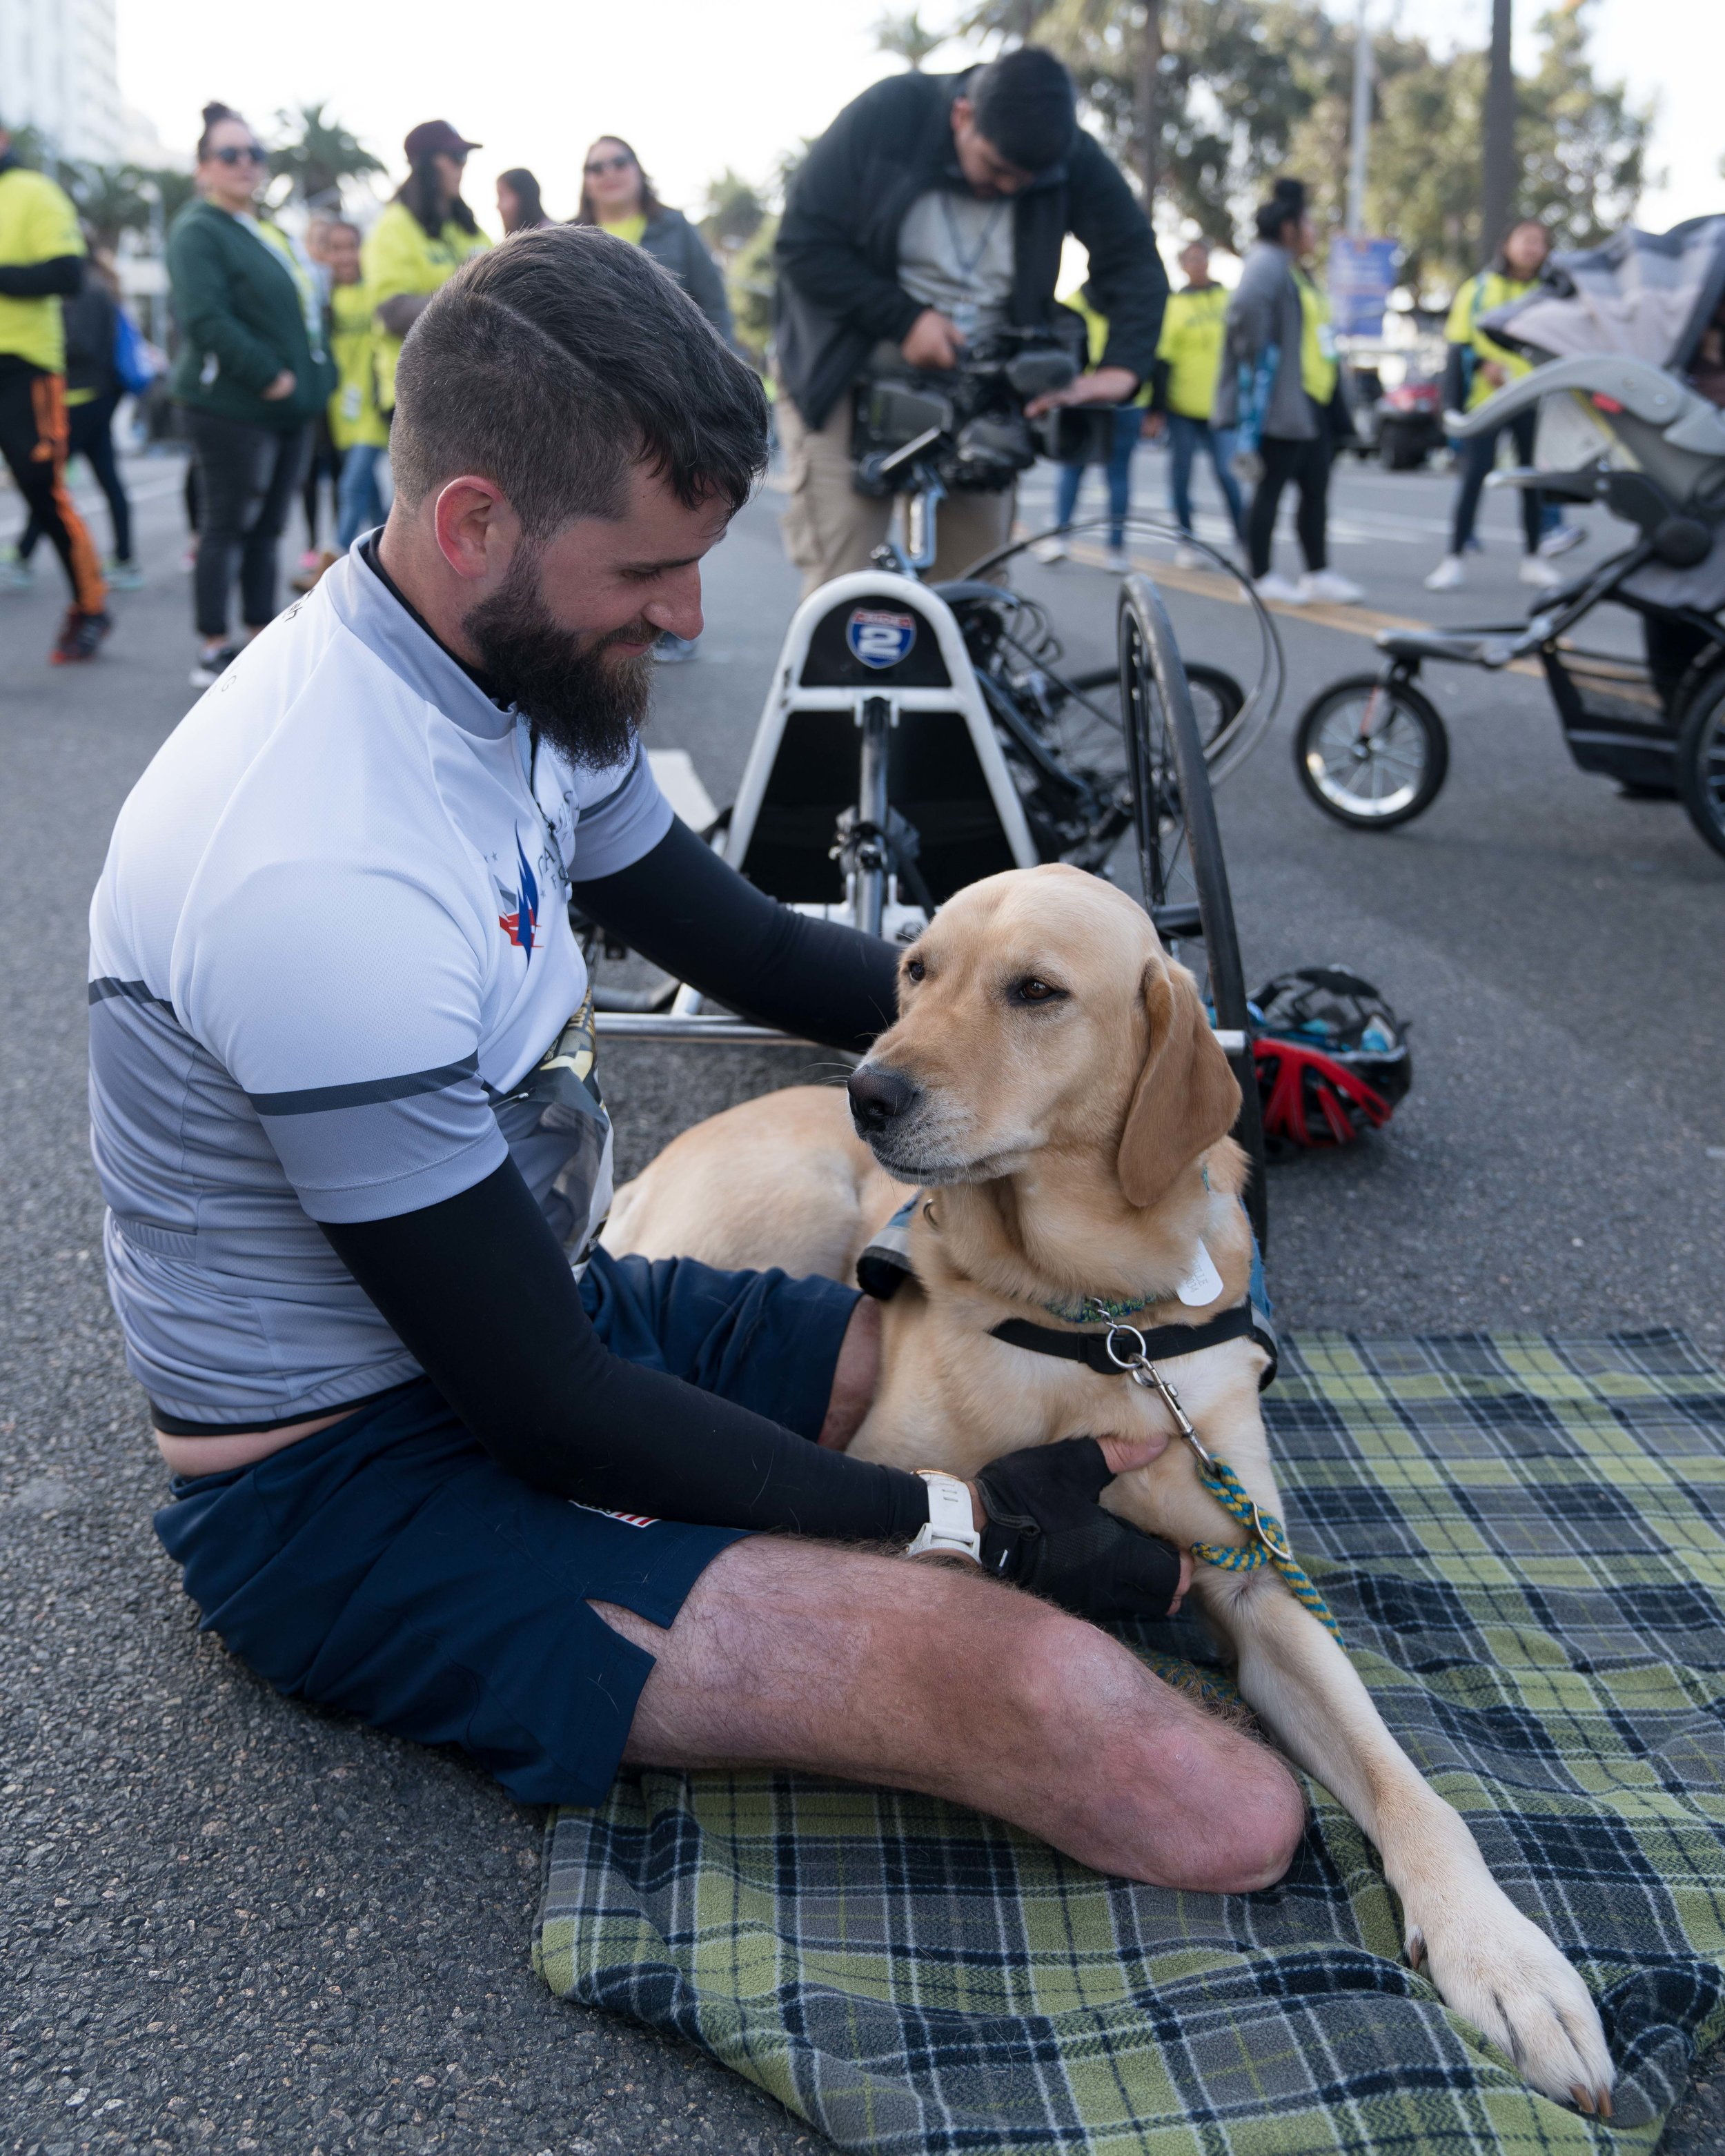 Stefan Leroy, 26, a retired United States Army Sergeant, competed as a wheelchair runner in the Los Angeles Marathon in Santa Monica, California on Sunday, Marhc 18, 2018. Leroy lost both his legs in an explosion while serving in Afghanistan in 2012. His service dog, Knoxville, helps him with daily activities. (Photo by: Helena Sung).